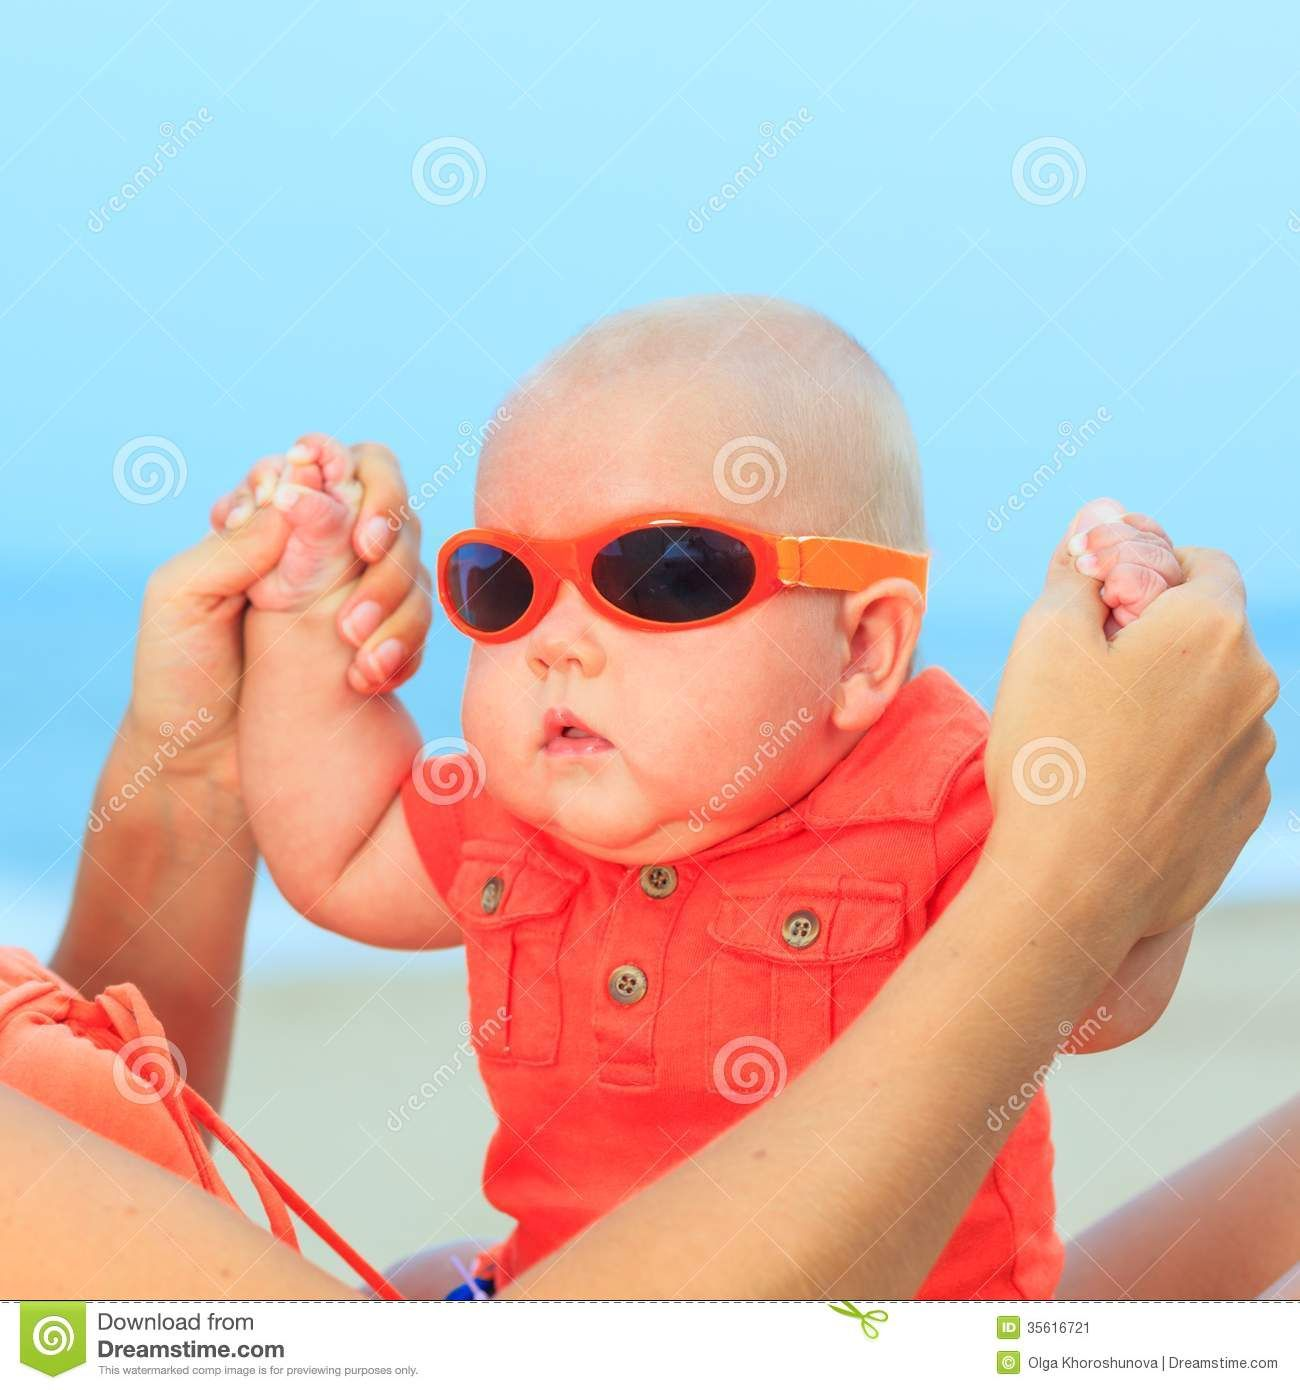 638fed939f2 Baby Wearing Sunglasses Royalty Free Stock Photo - Image  35616715 ...